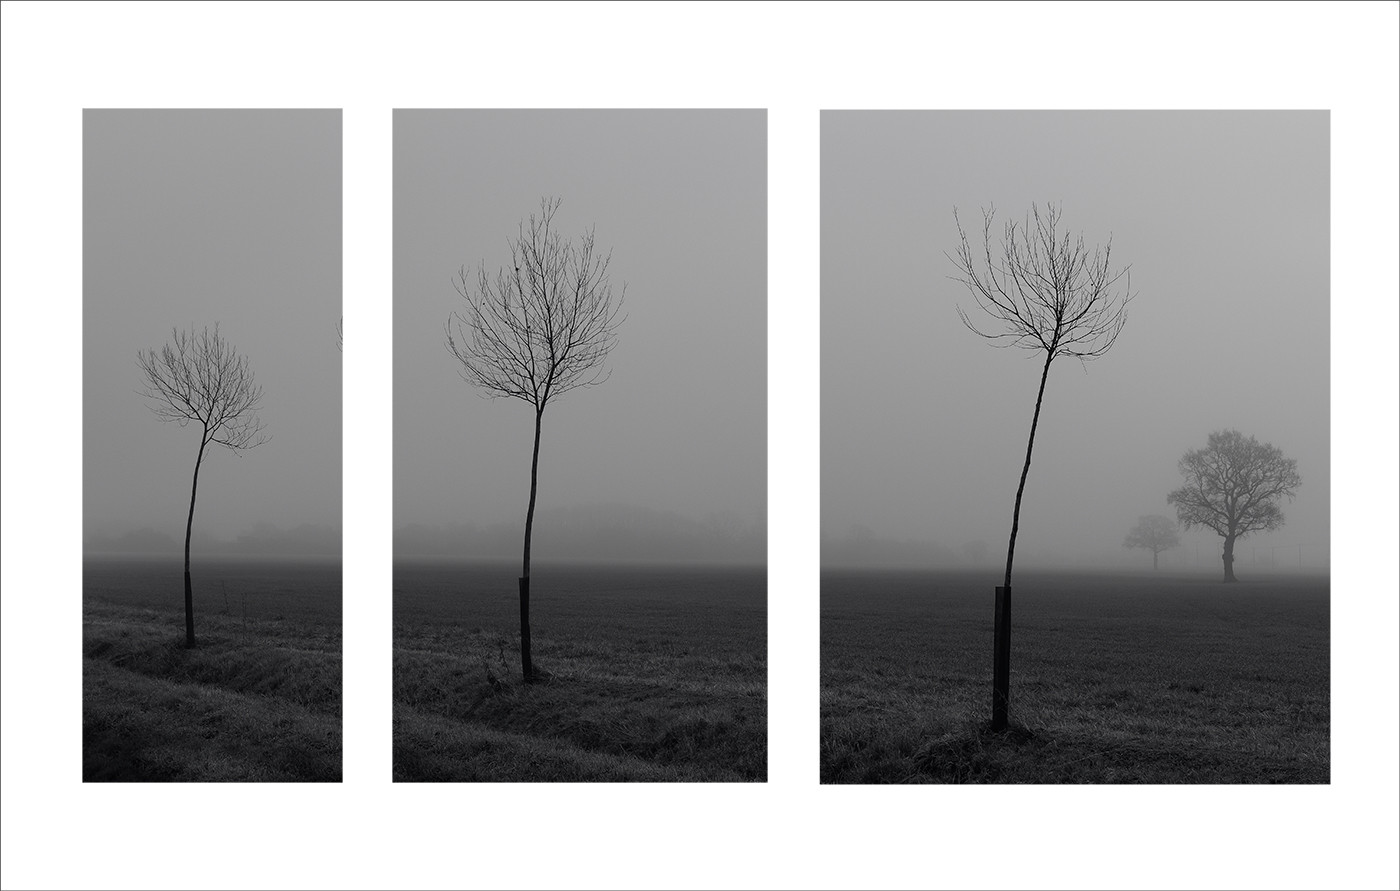 TREES IN THE MIST by Colin Hurley